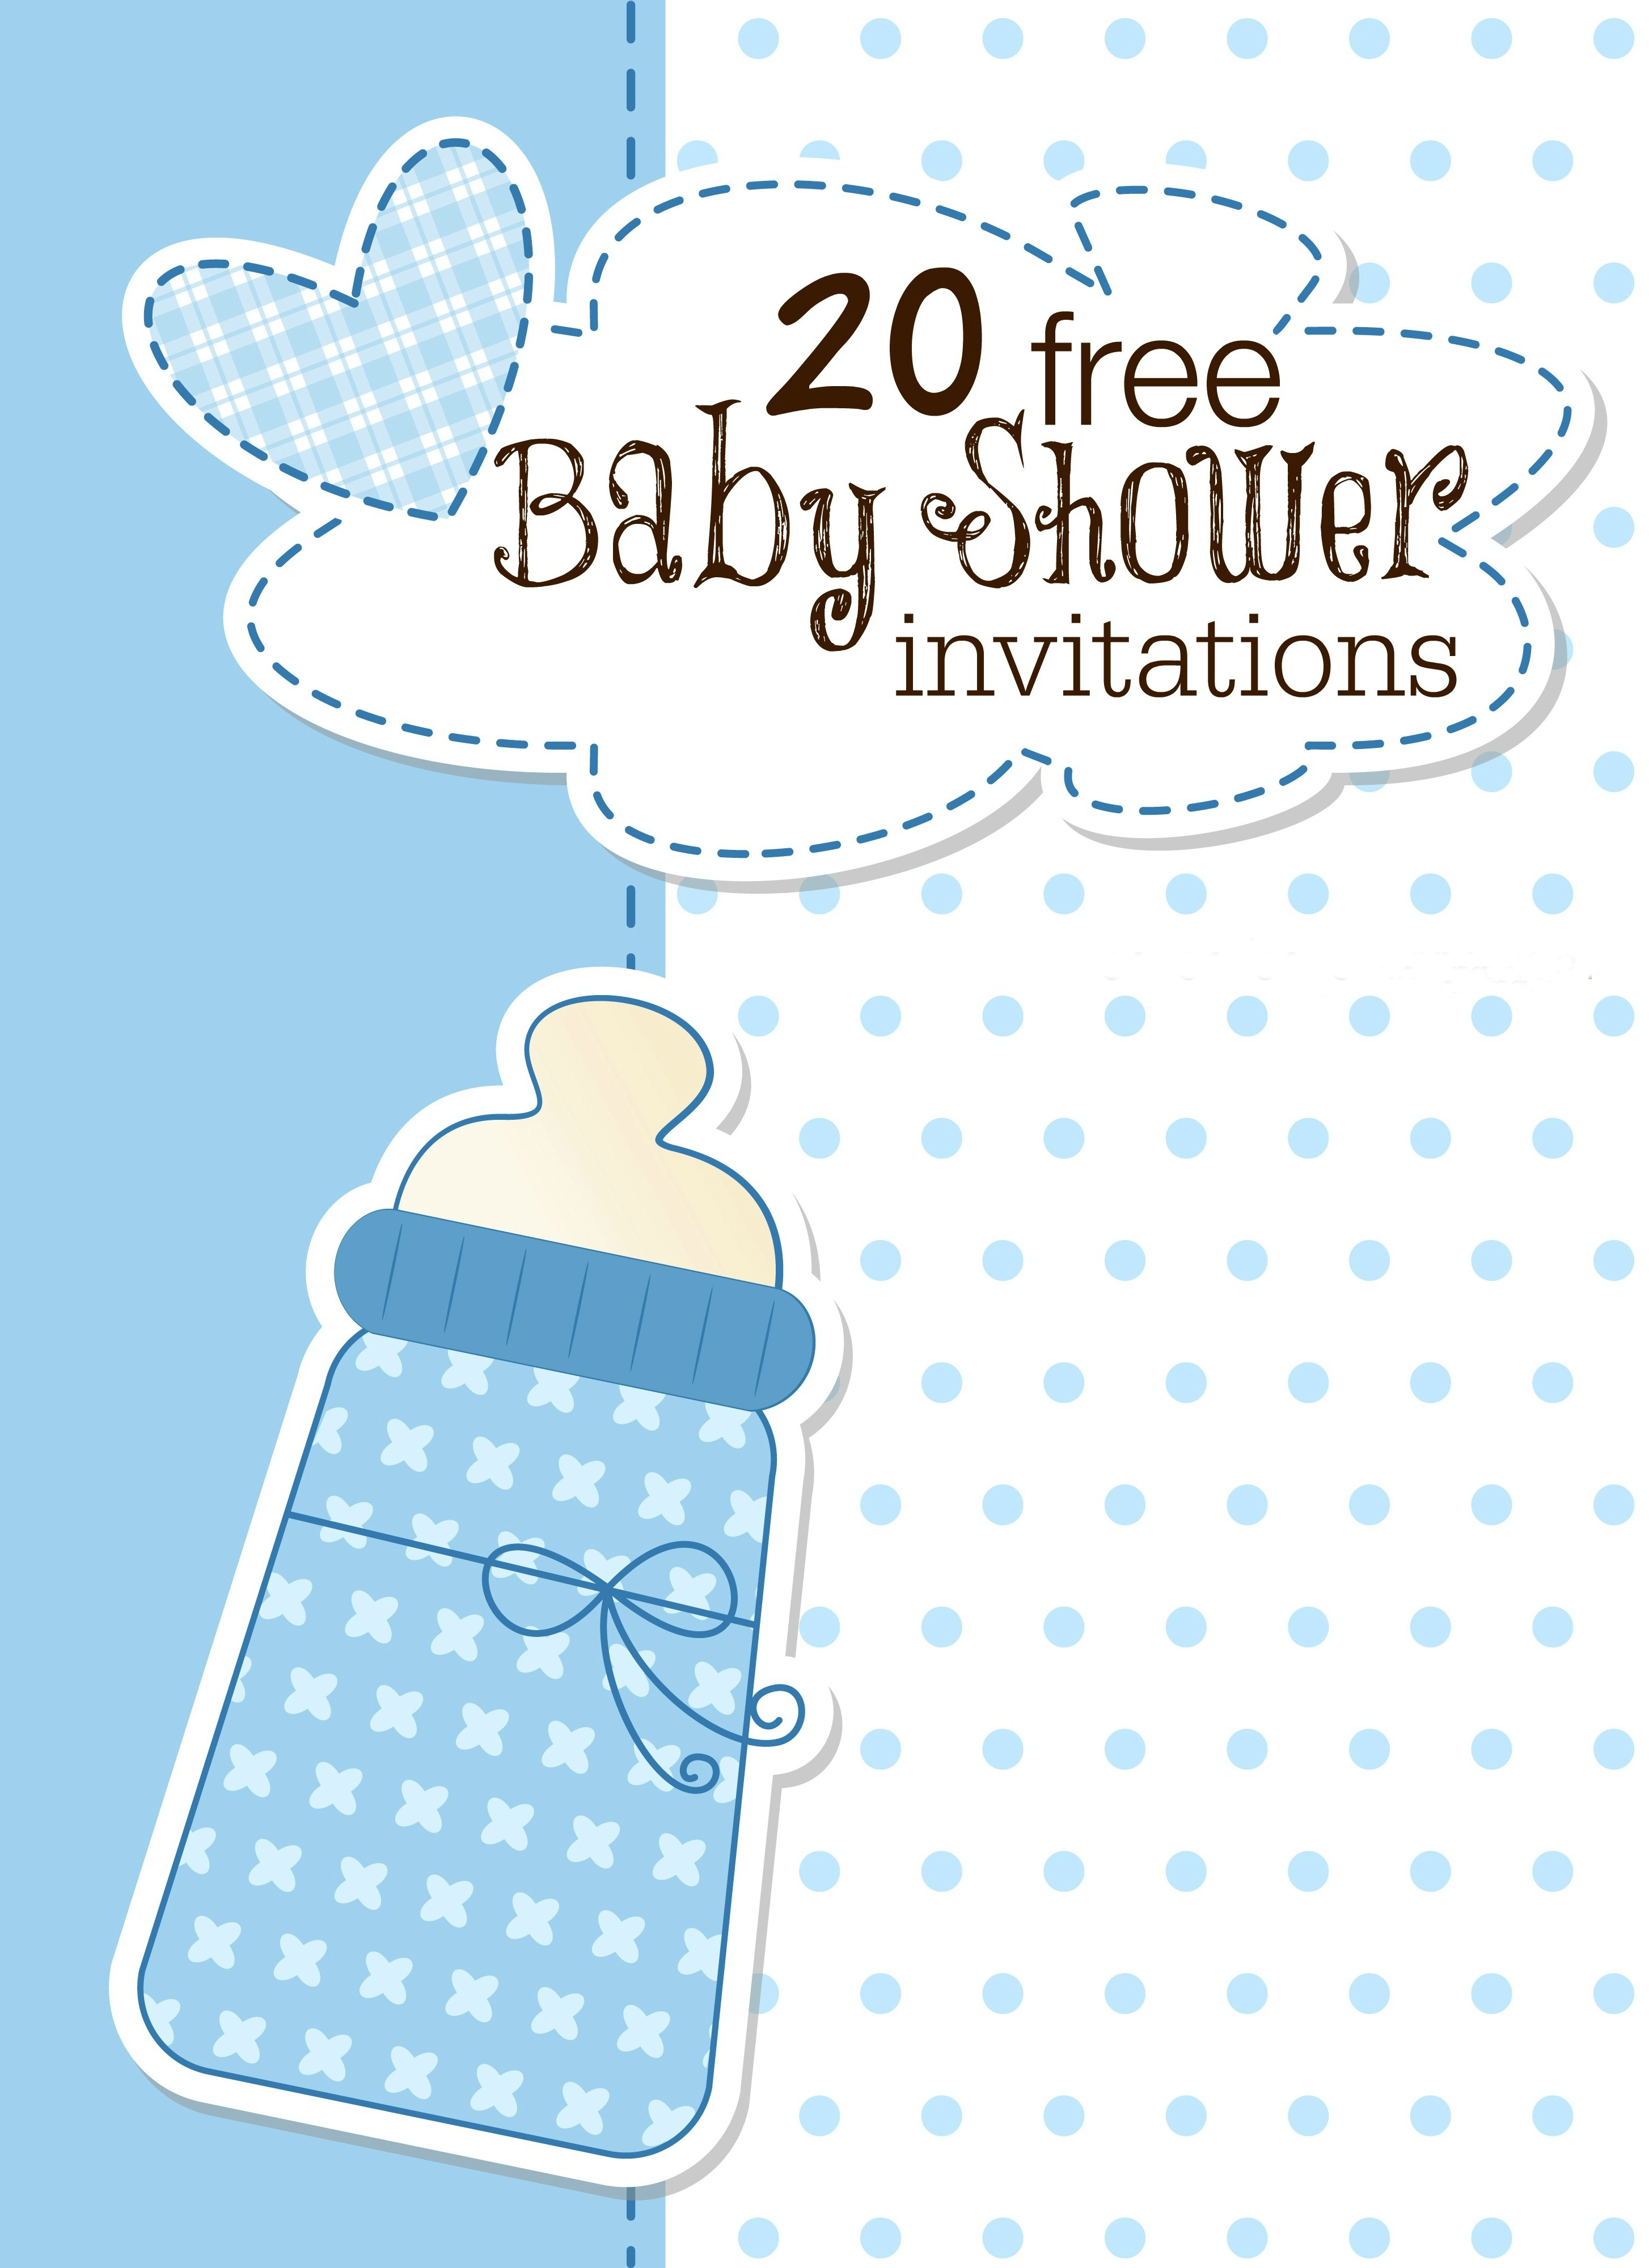 Printable Baby Shower Invitations - Free Printable Baby Shower Invitation Maker